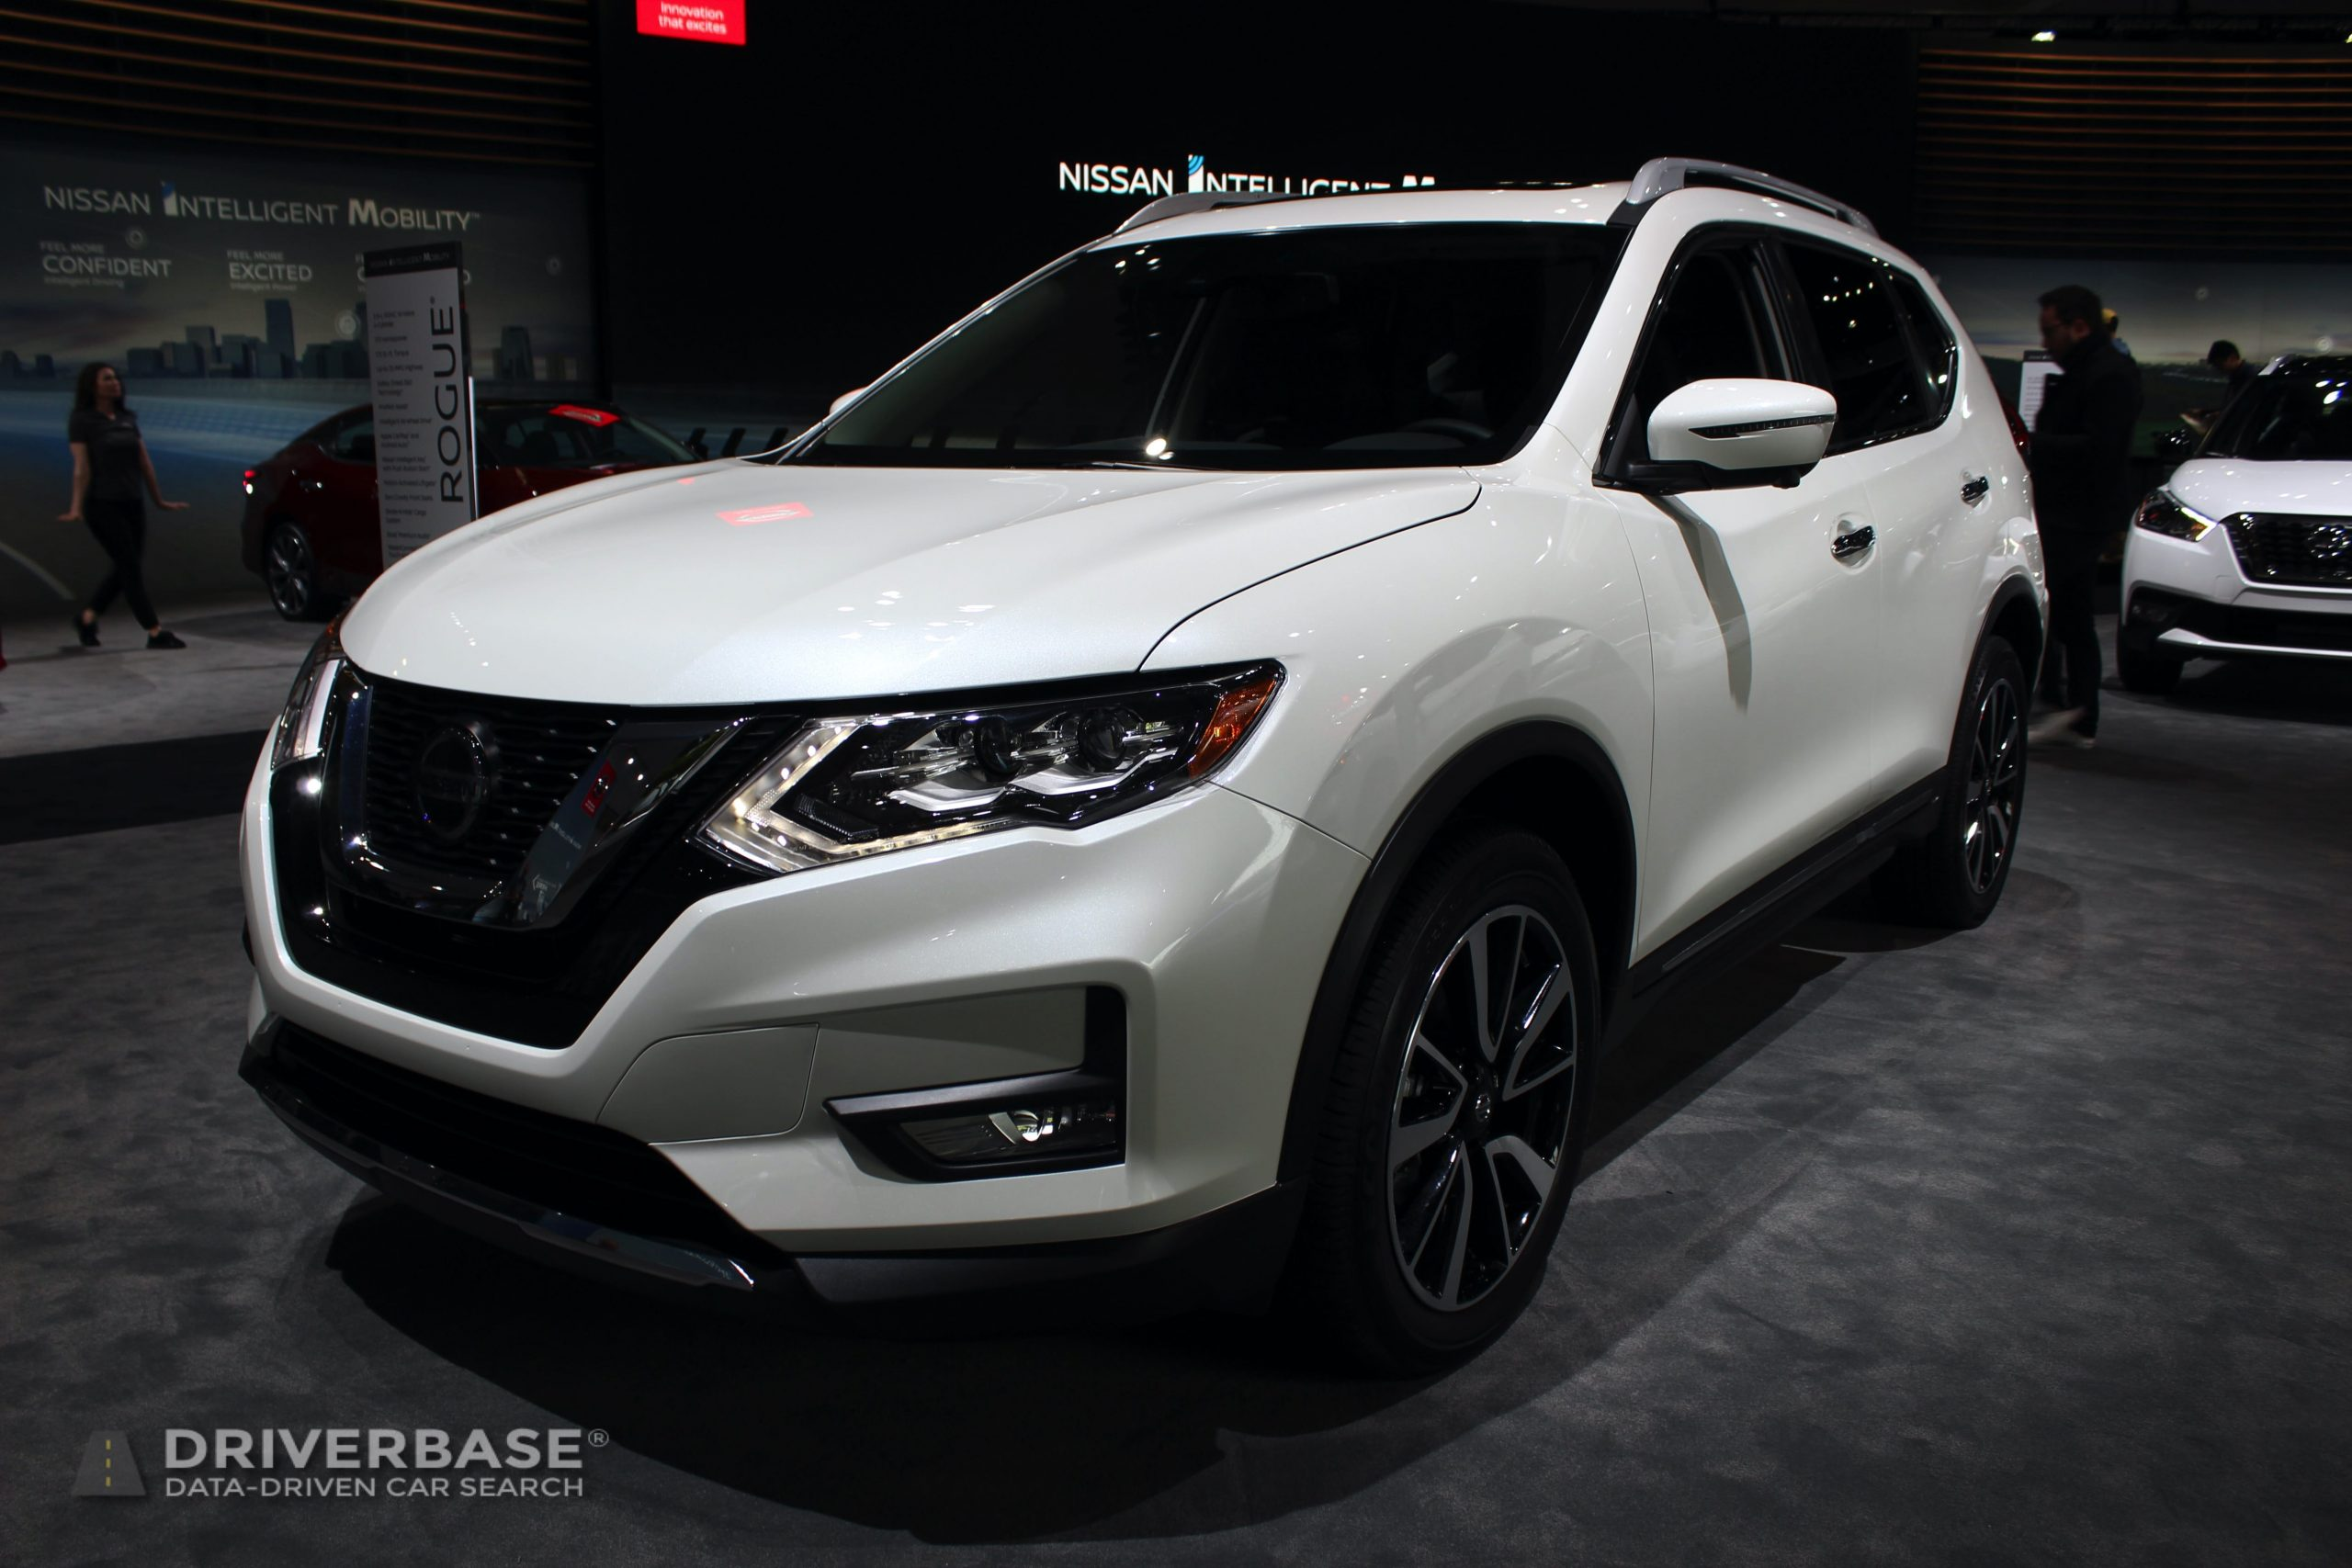 2020 Nissan Rogue SL at the 2019 Los Angeles Auto Show